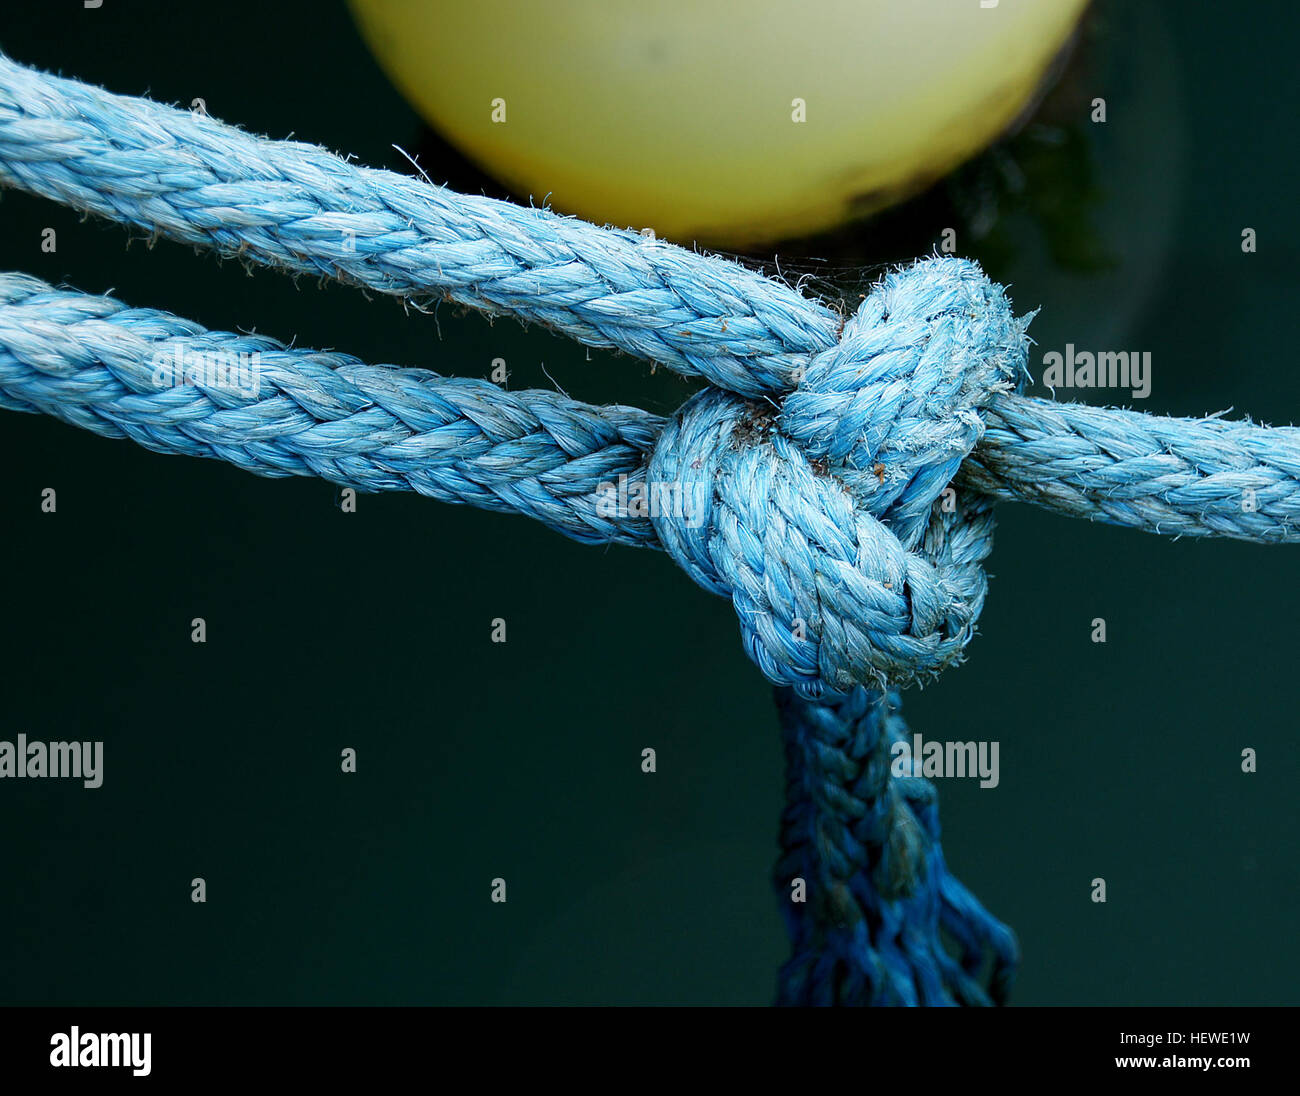 ication (,),,,boats,fasteners,knots,ropes,ties Stock Photo